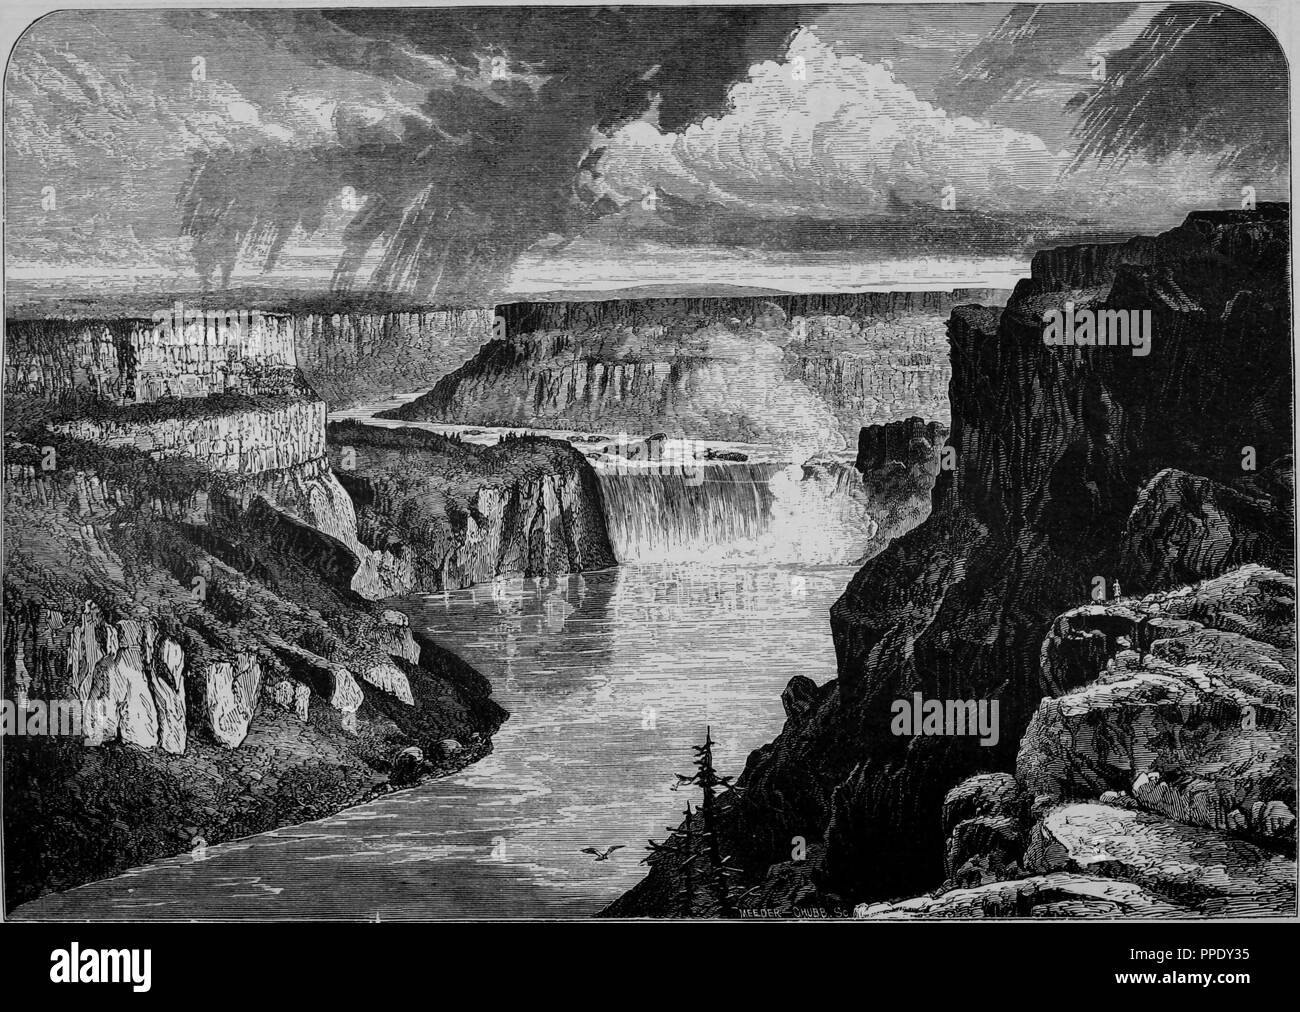 Engraving of the Shoshone Falls on the Snake River in Idaho, from the book 'The Pacific tourist', 1877. Courtesy Internet Archive. () - Stock Image